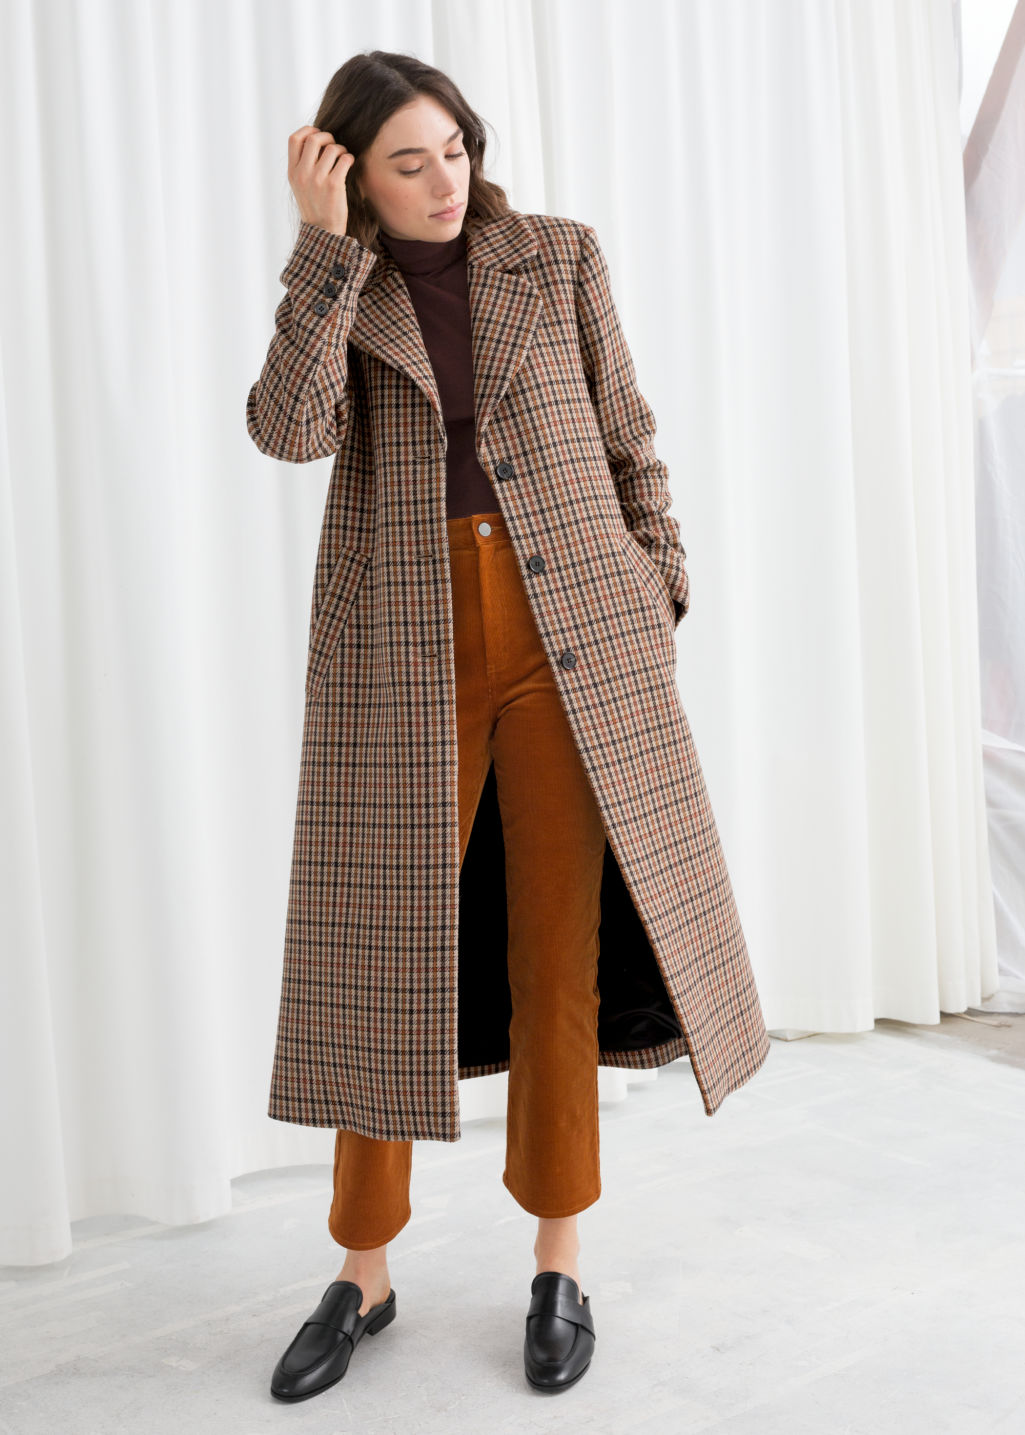 Long stylish coats for ladies forecasting dress for everyday in 2019